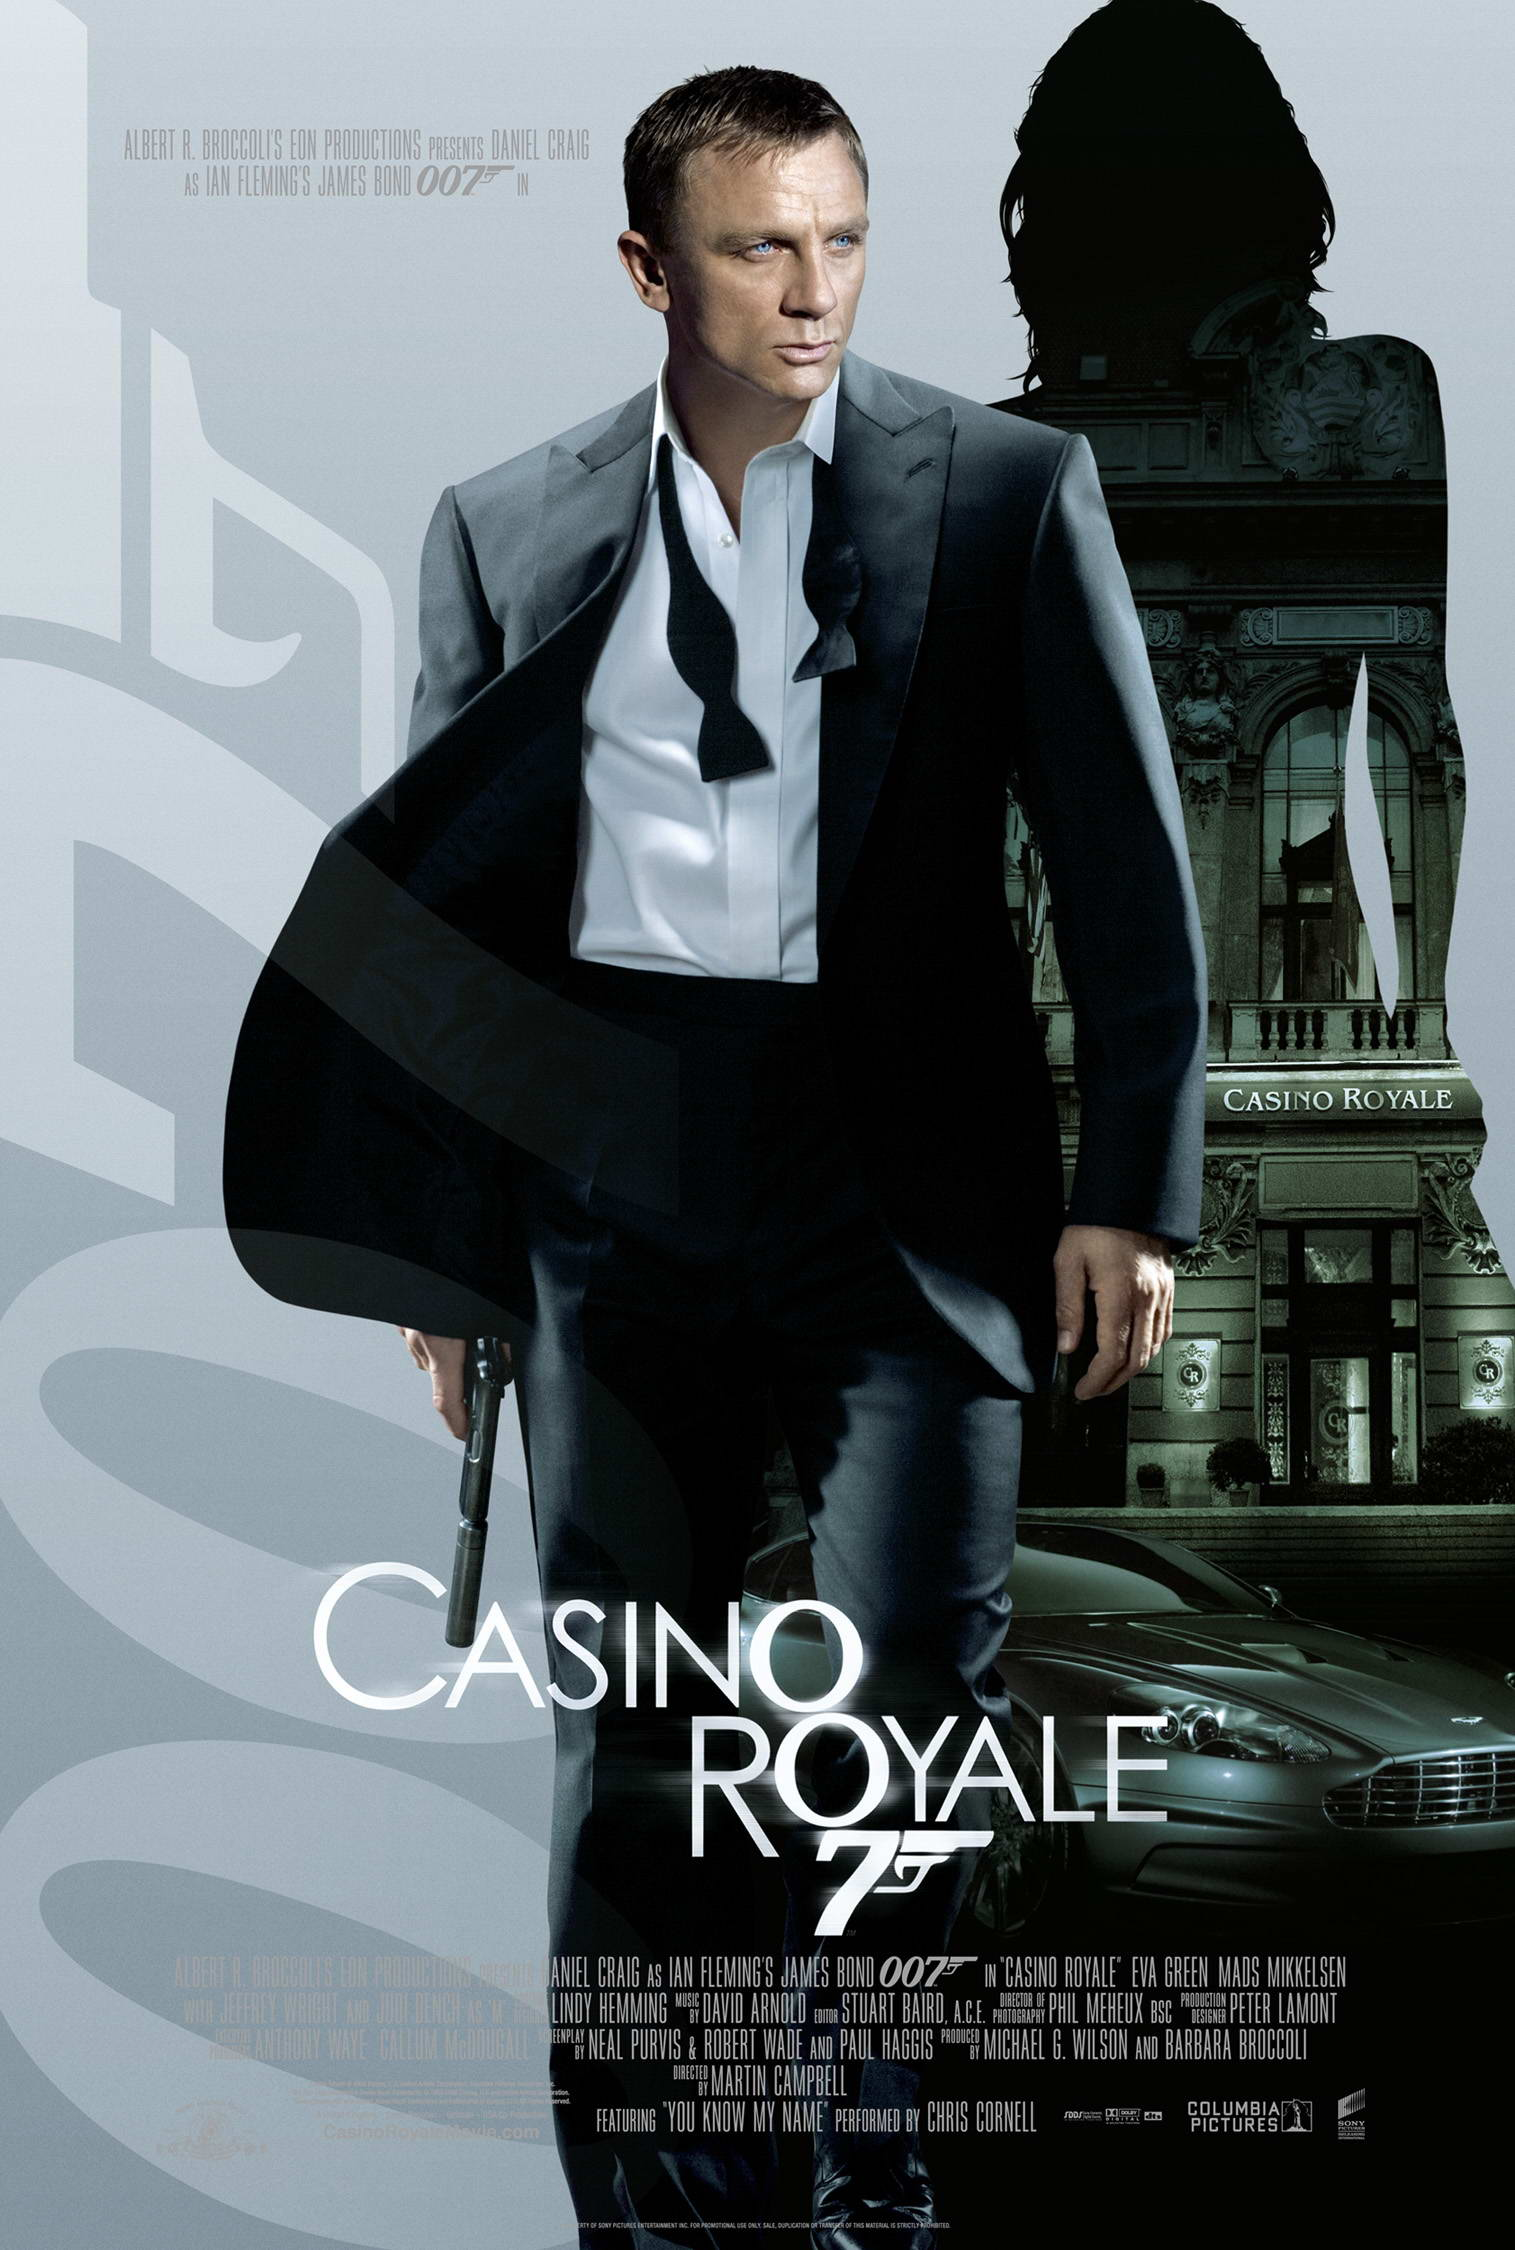 Download casino royale theme site casinosduquebec.com casino de montreal